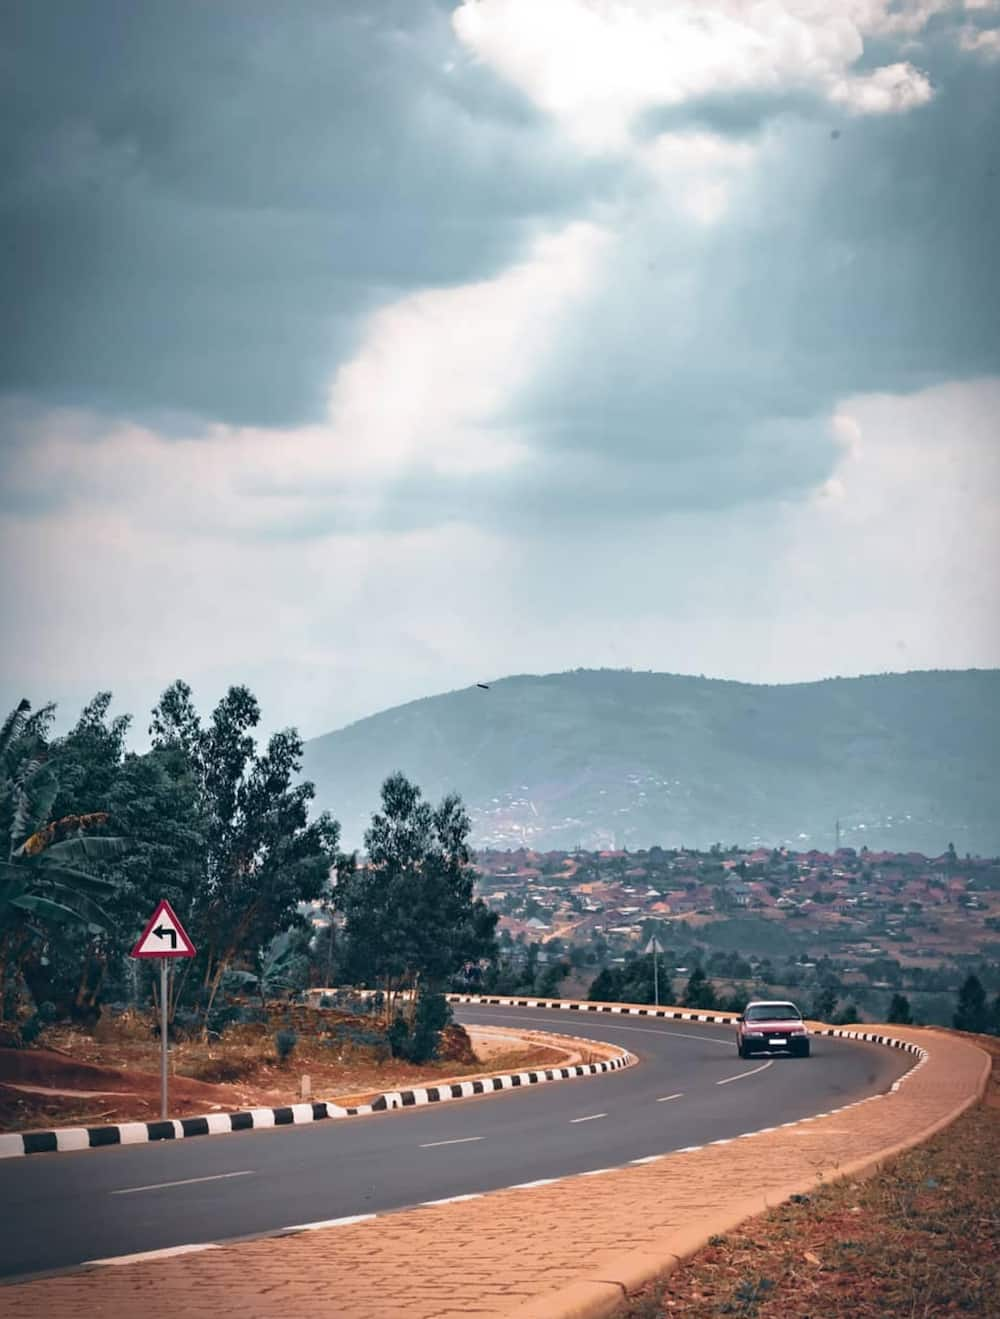 African countries with quality roads